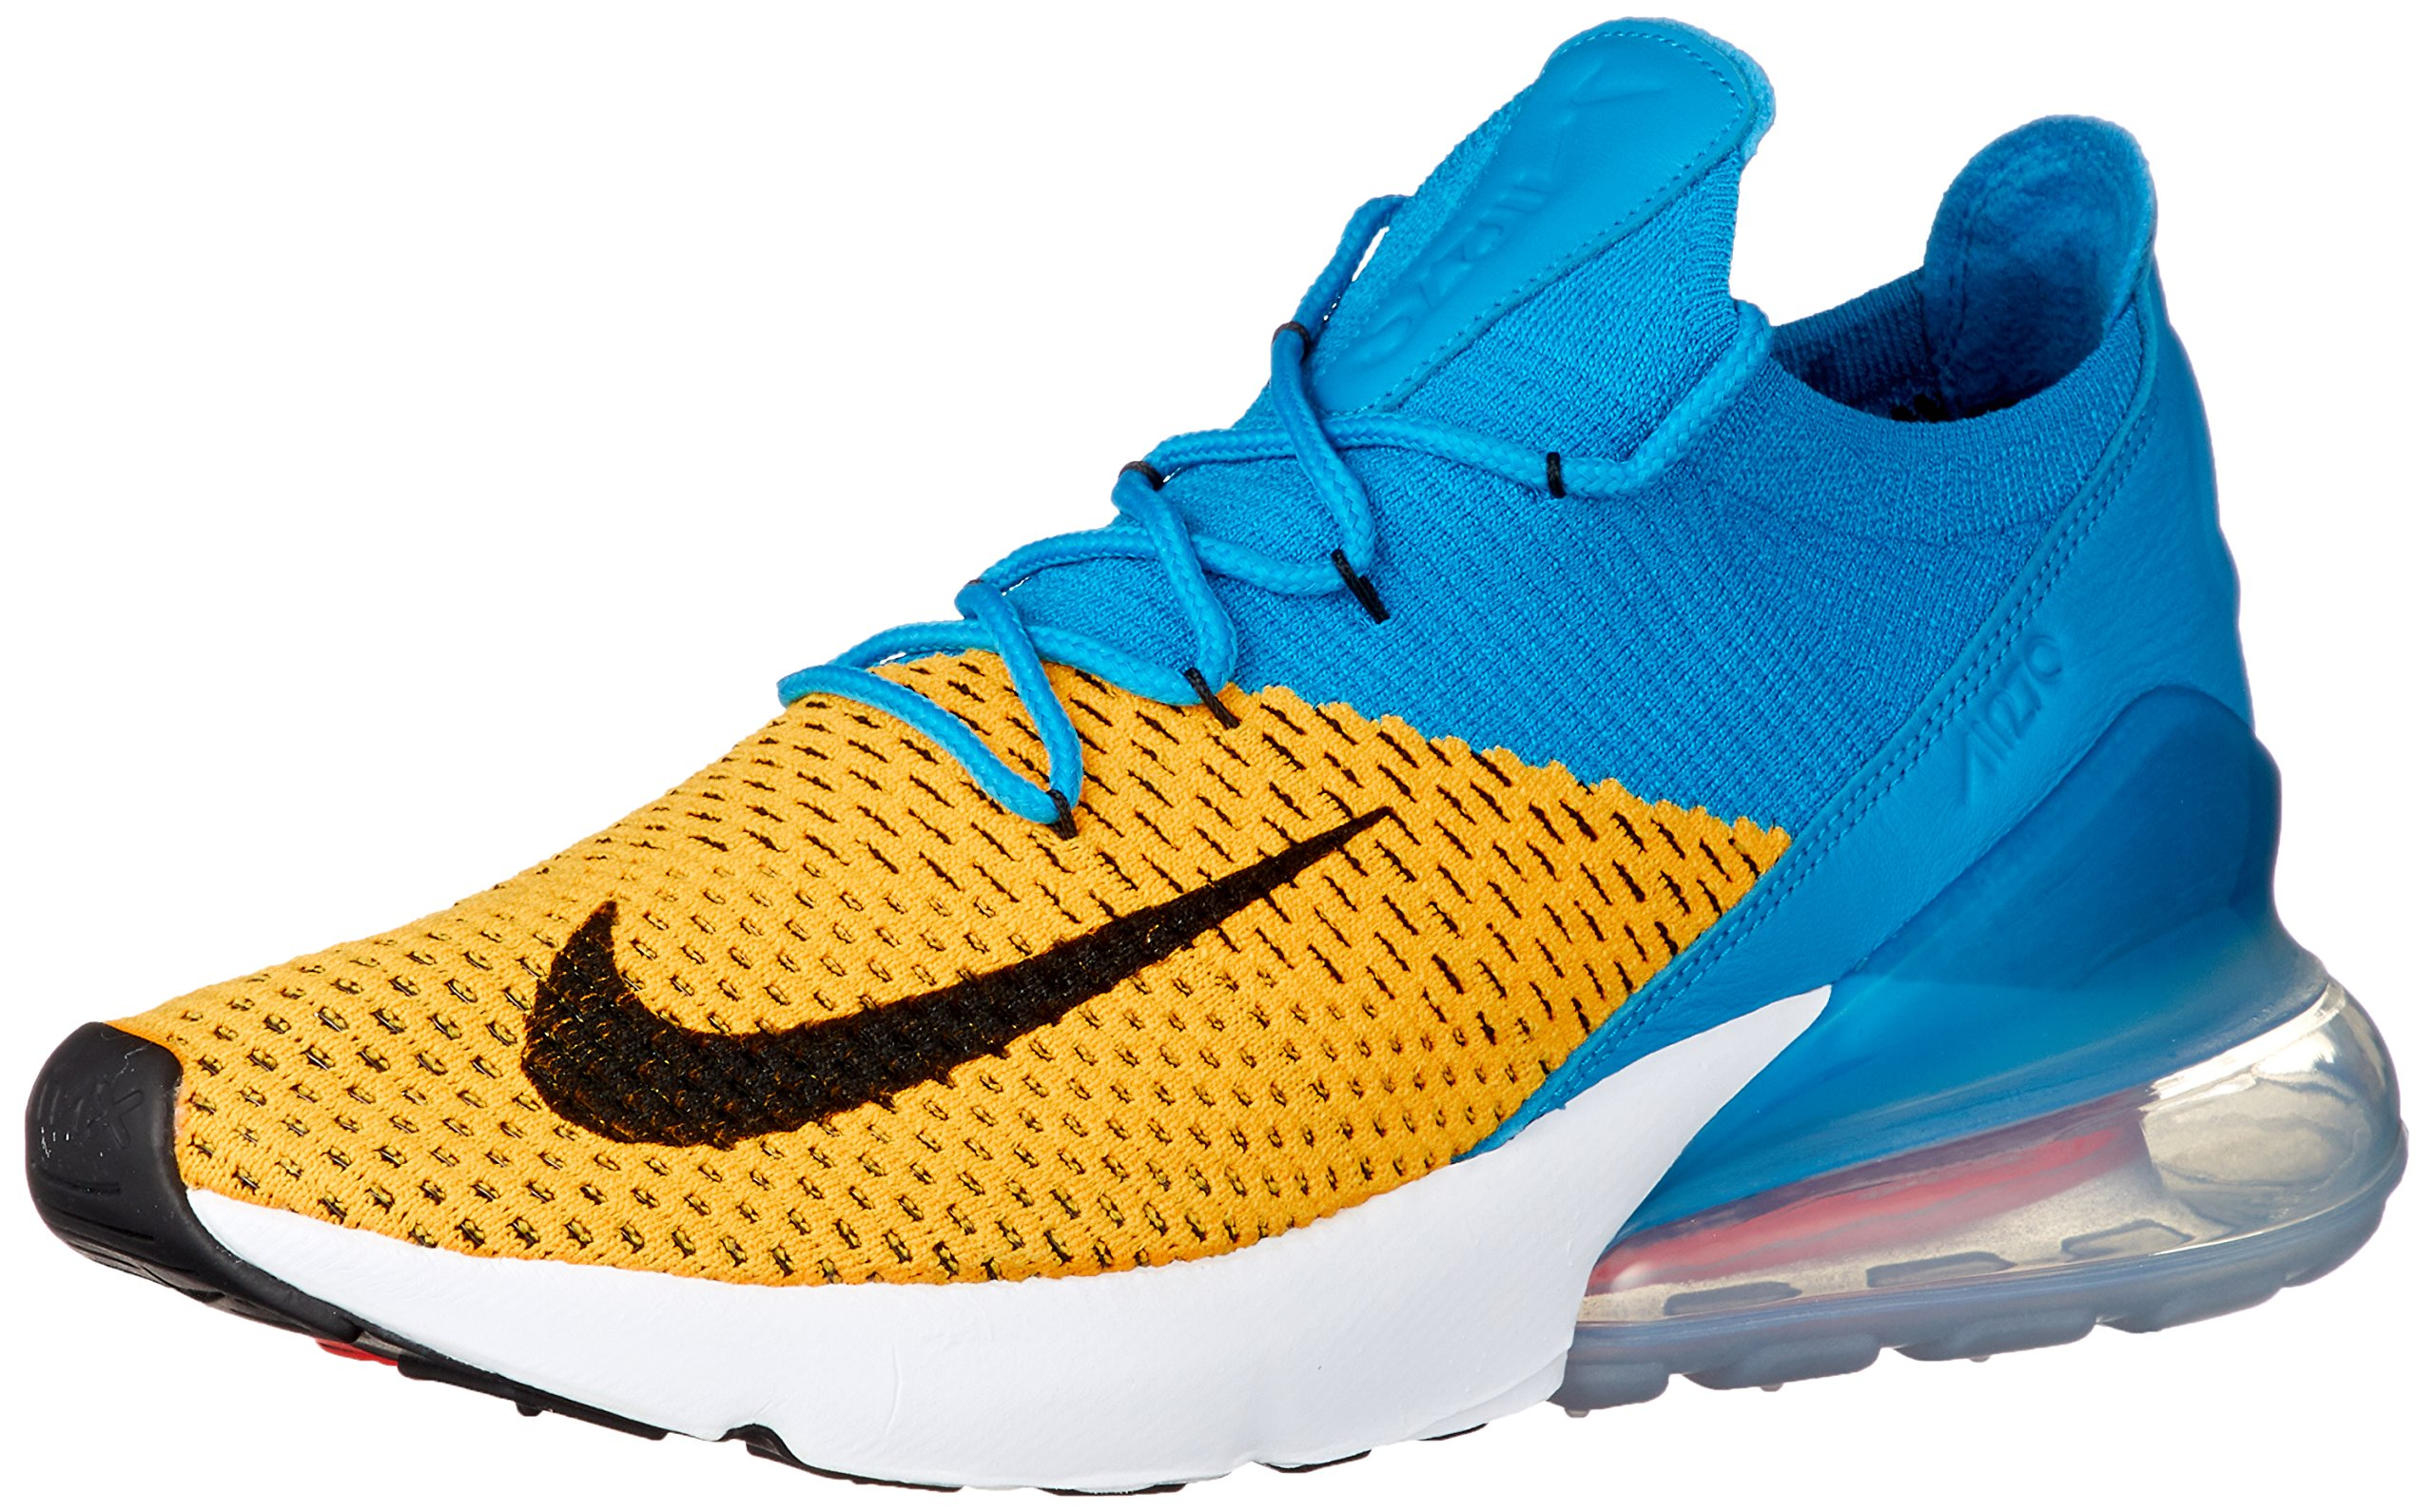 new product 68721 9f435 Nike Mens Air Max 270 Flyknit Laser Orange/Blue Flyknit Size 11